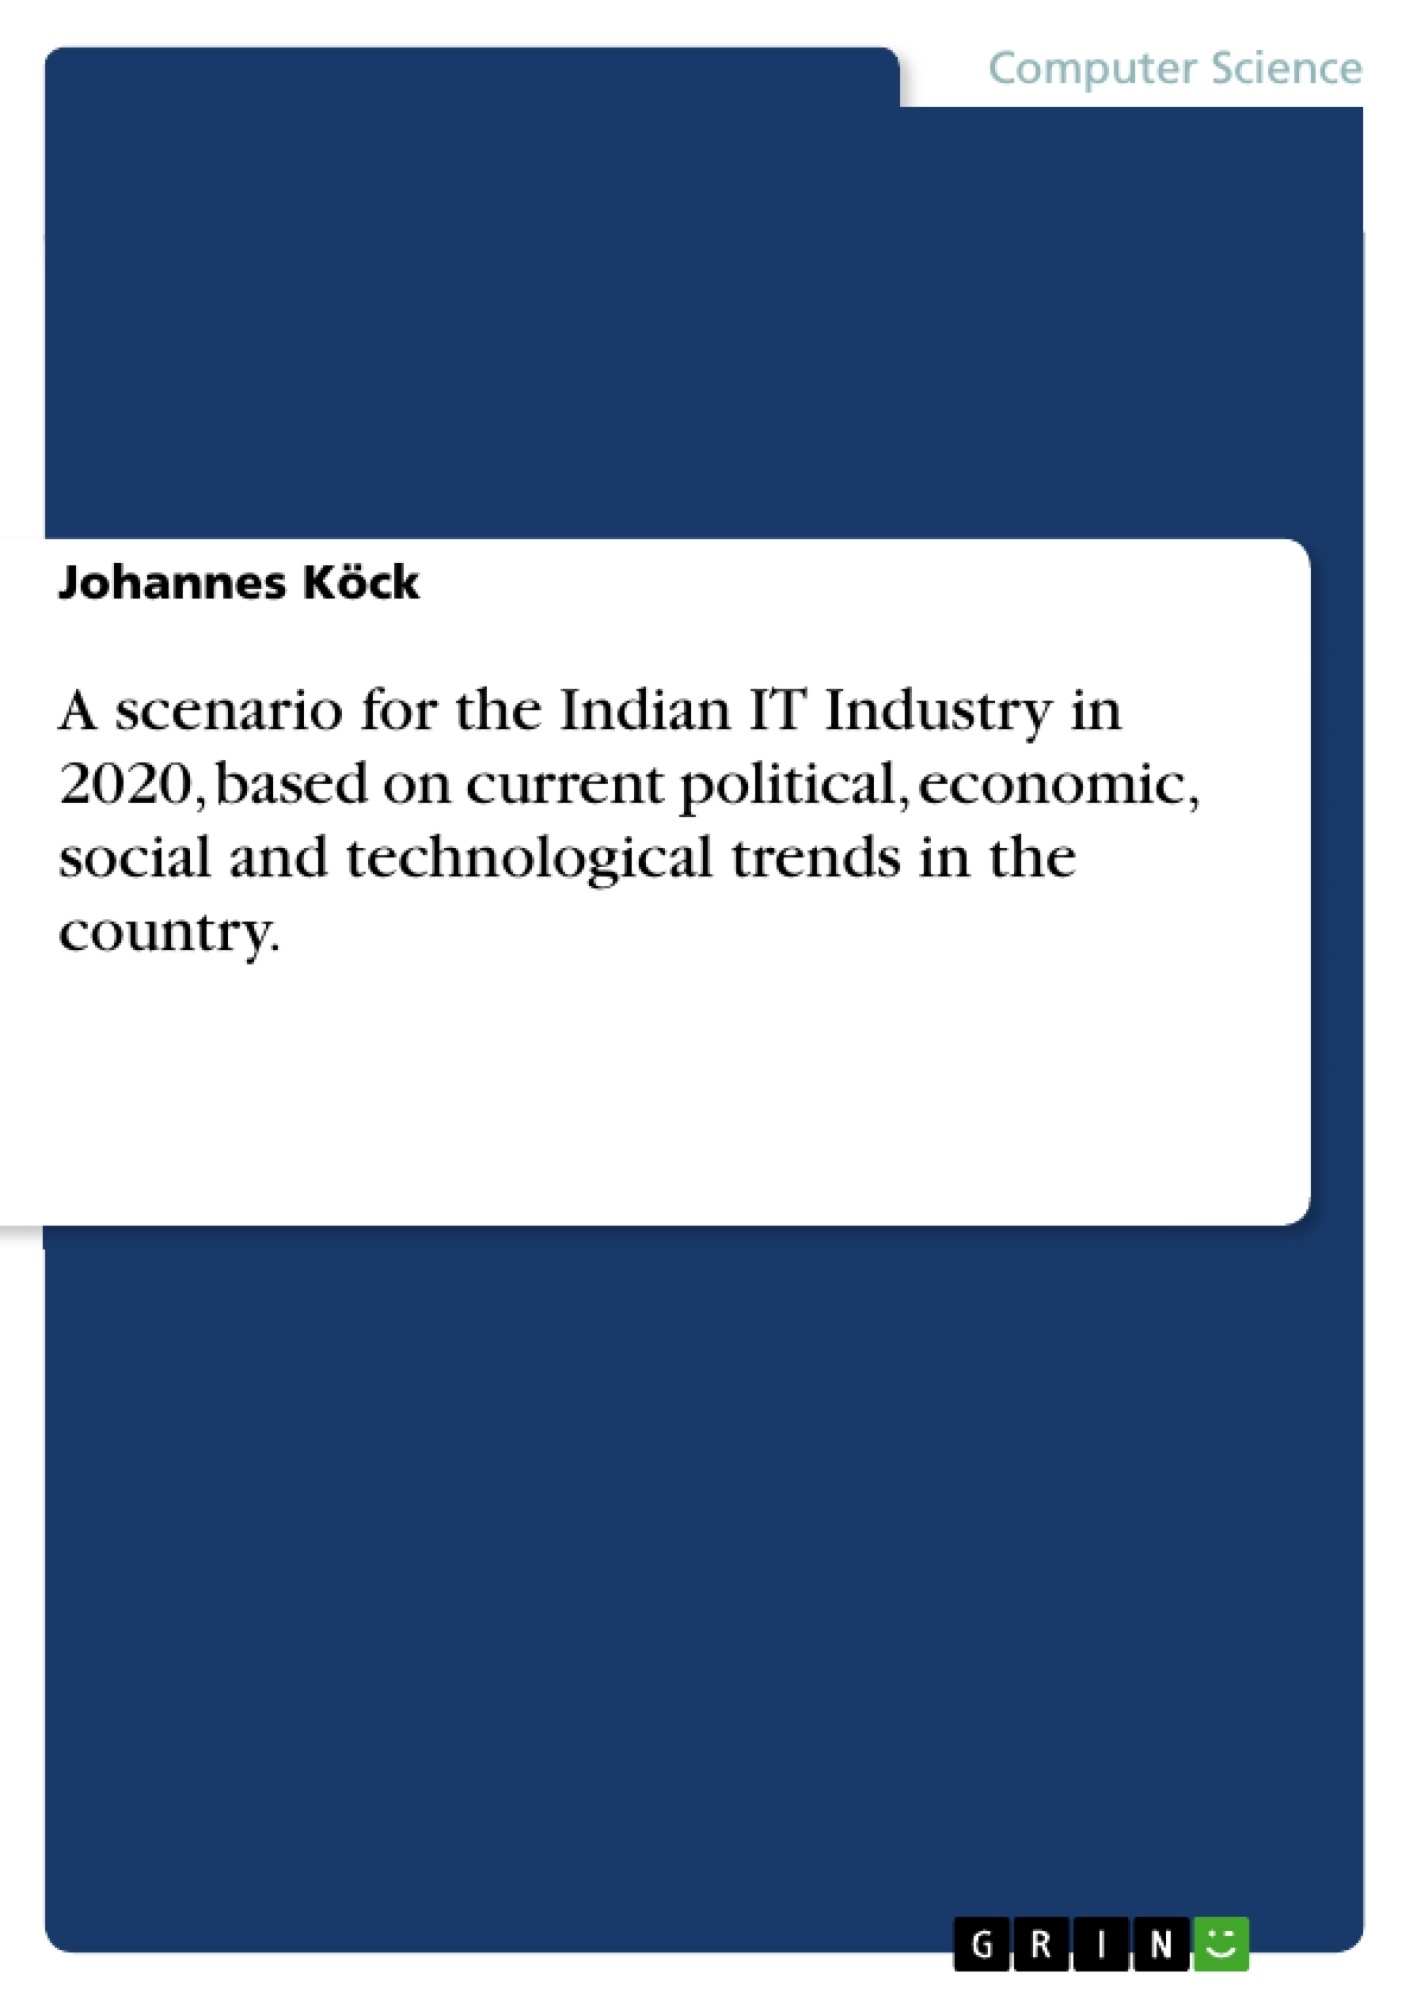 Title: A scenario for the Indian IT Industry in 2020, based on current political, economic, social and technological trends in the country.